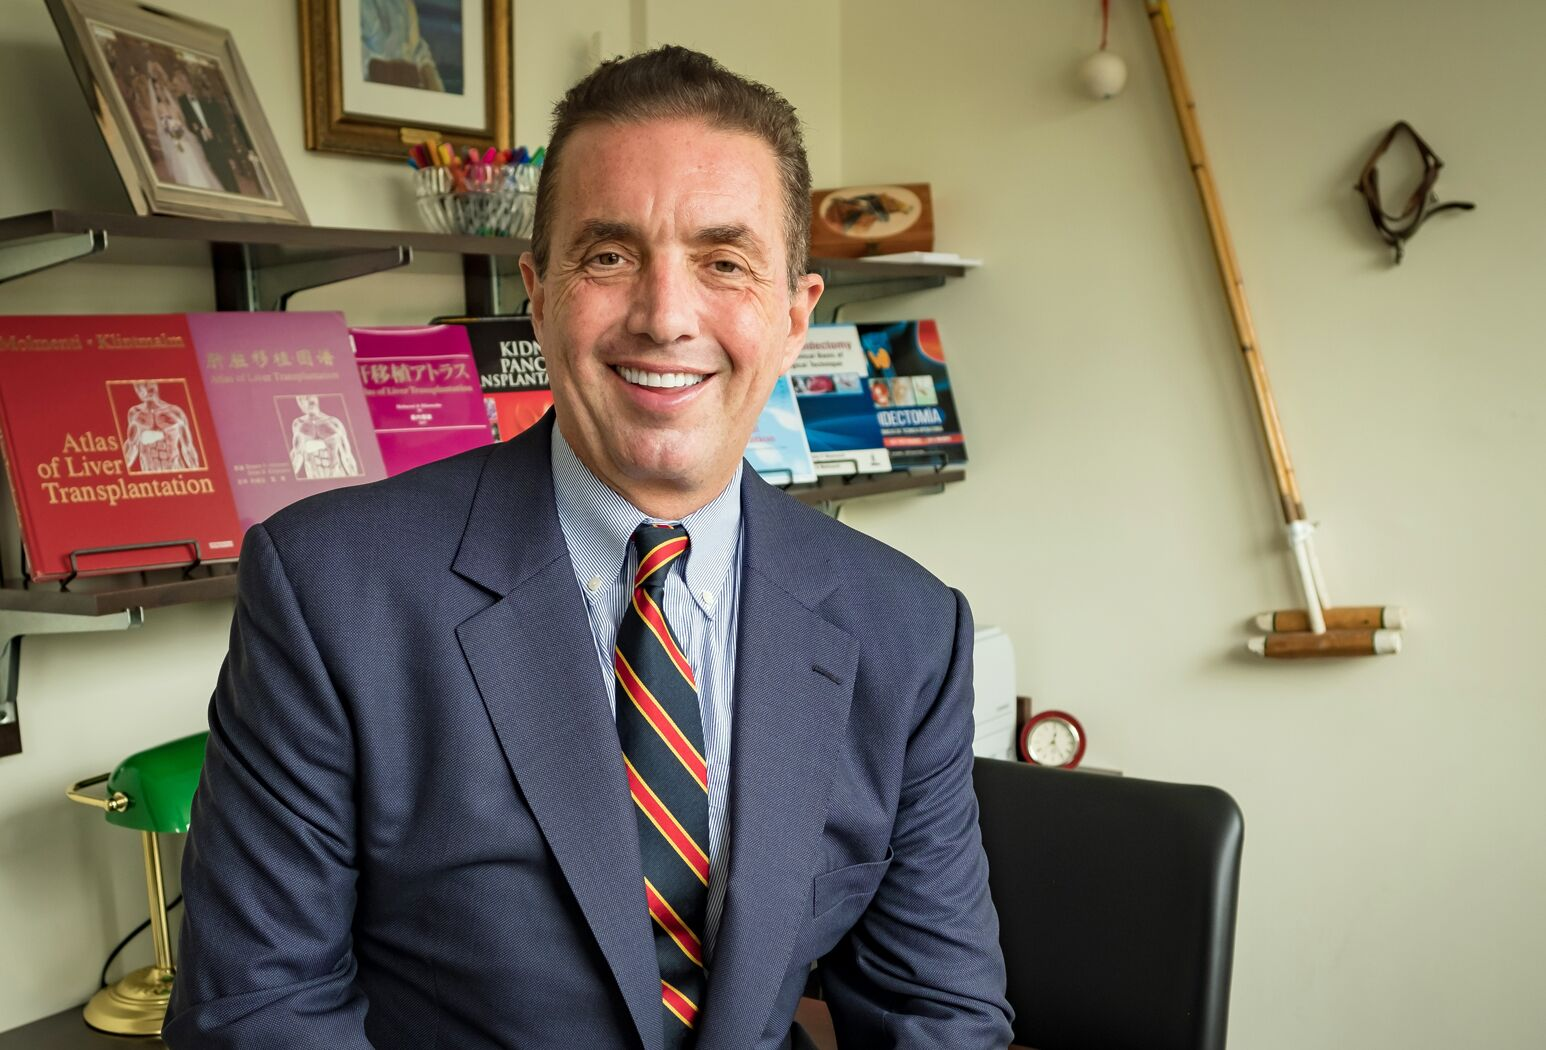 Ernesto Molmenti, MD, sits in his office after discussing his clinical/surgical introducer, which he believes has the potential to change laparoscopic surgery, as well as robotic and interventional radiology techniques